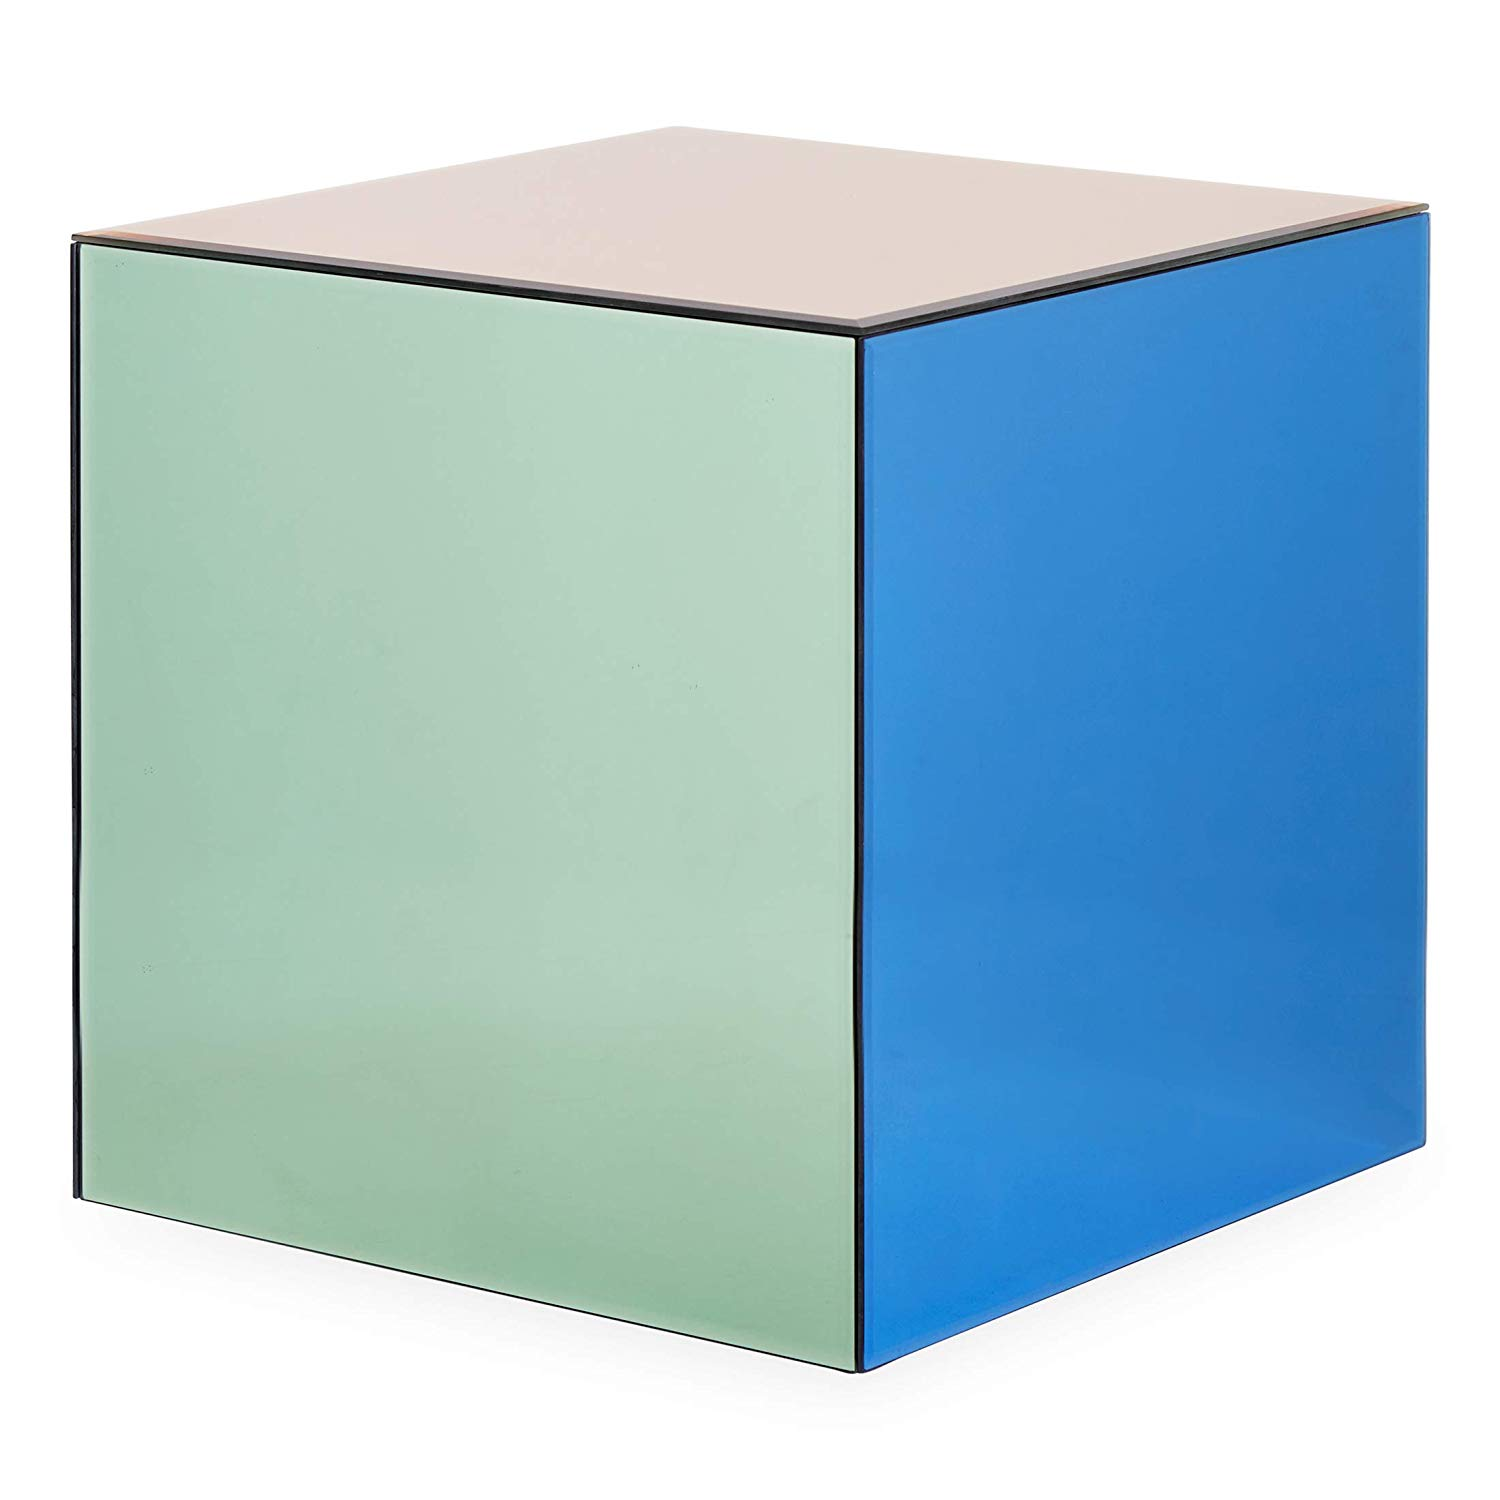 now house jonathan adler chroma cube accent table aqua blue multicolor kitchen dining bright colored coffee floor threshold transitions white chair oval outdoor round plastic